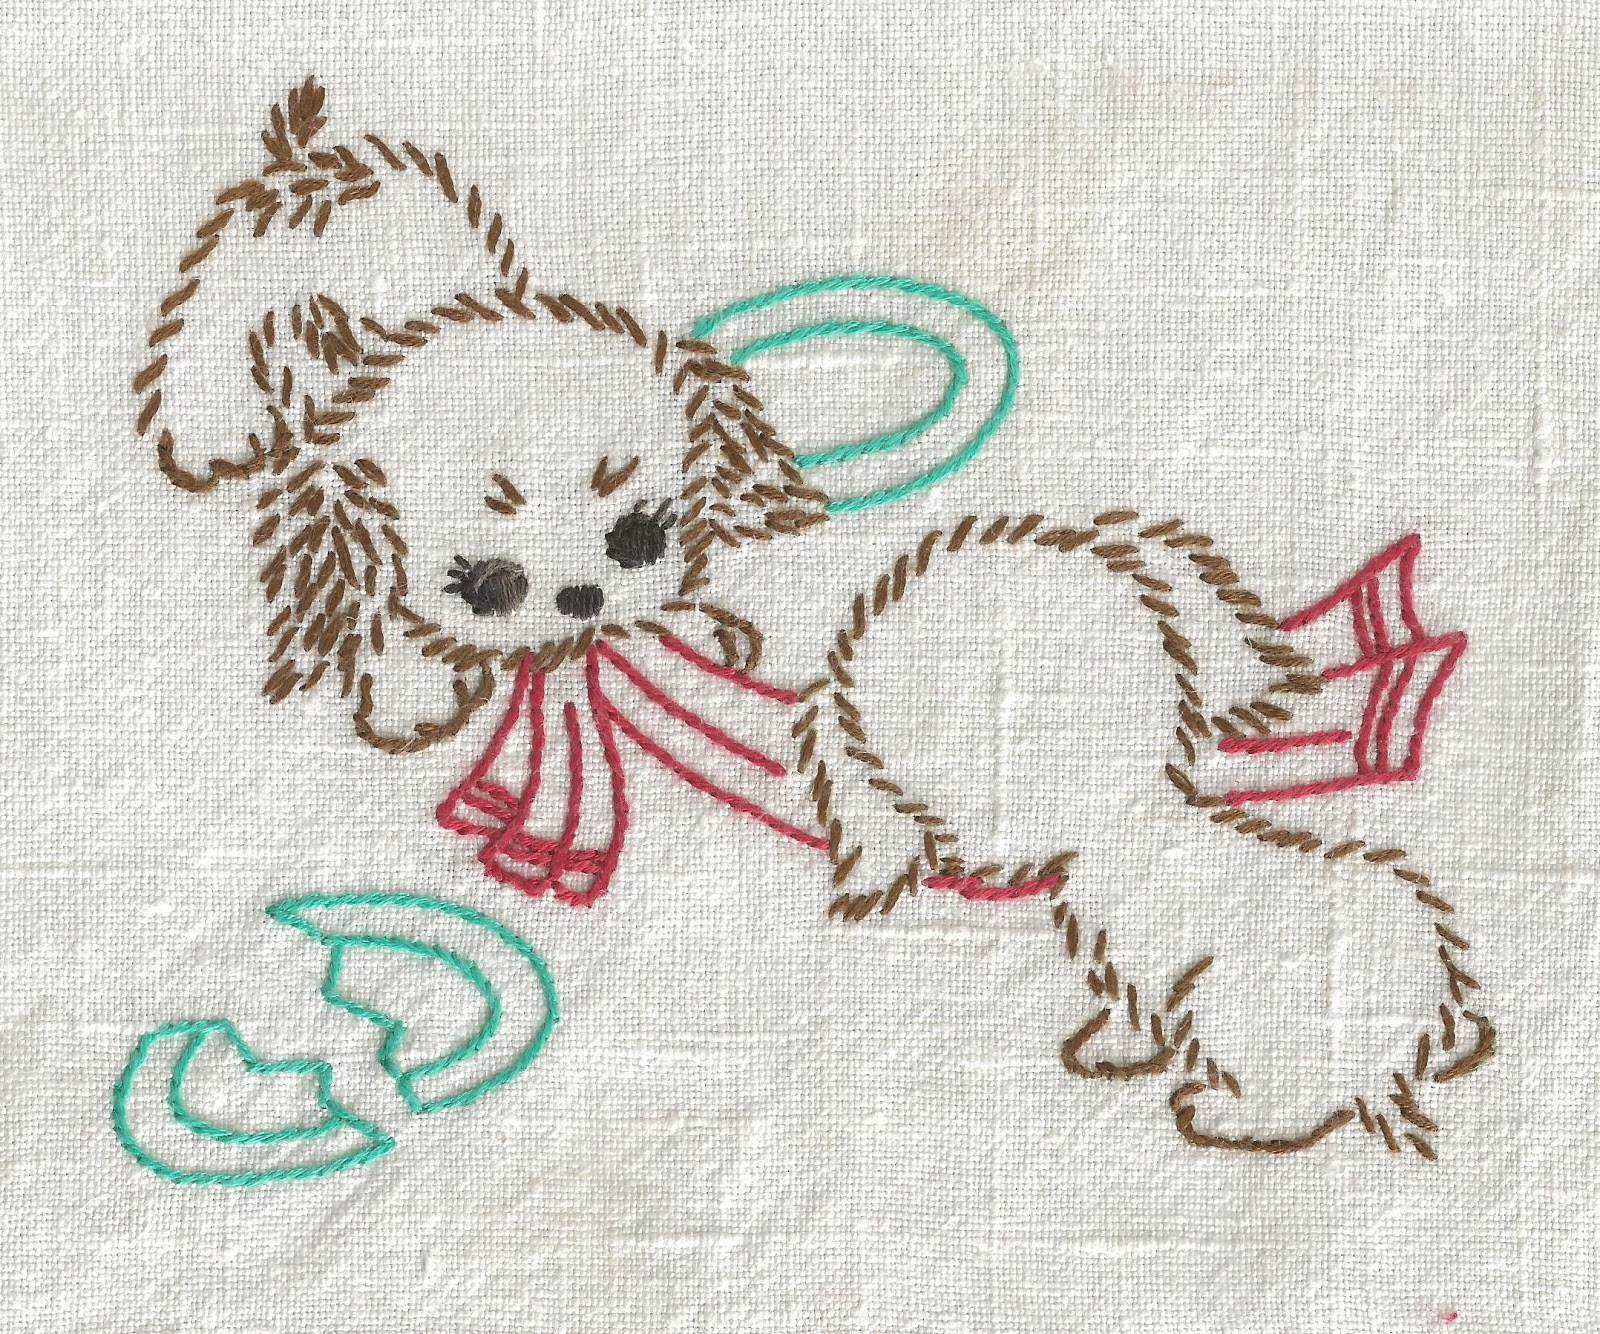 Kitchen Towel Embroidery Patterns Vintage Puppy Dog Tea Towel Embroidery Its My Cake